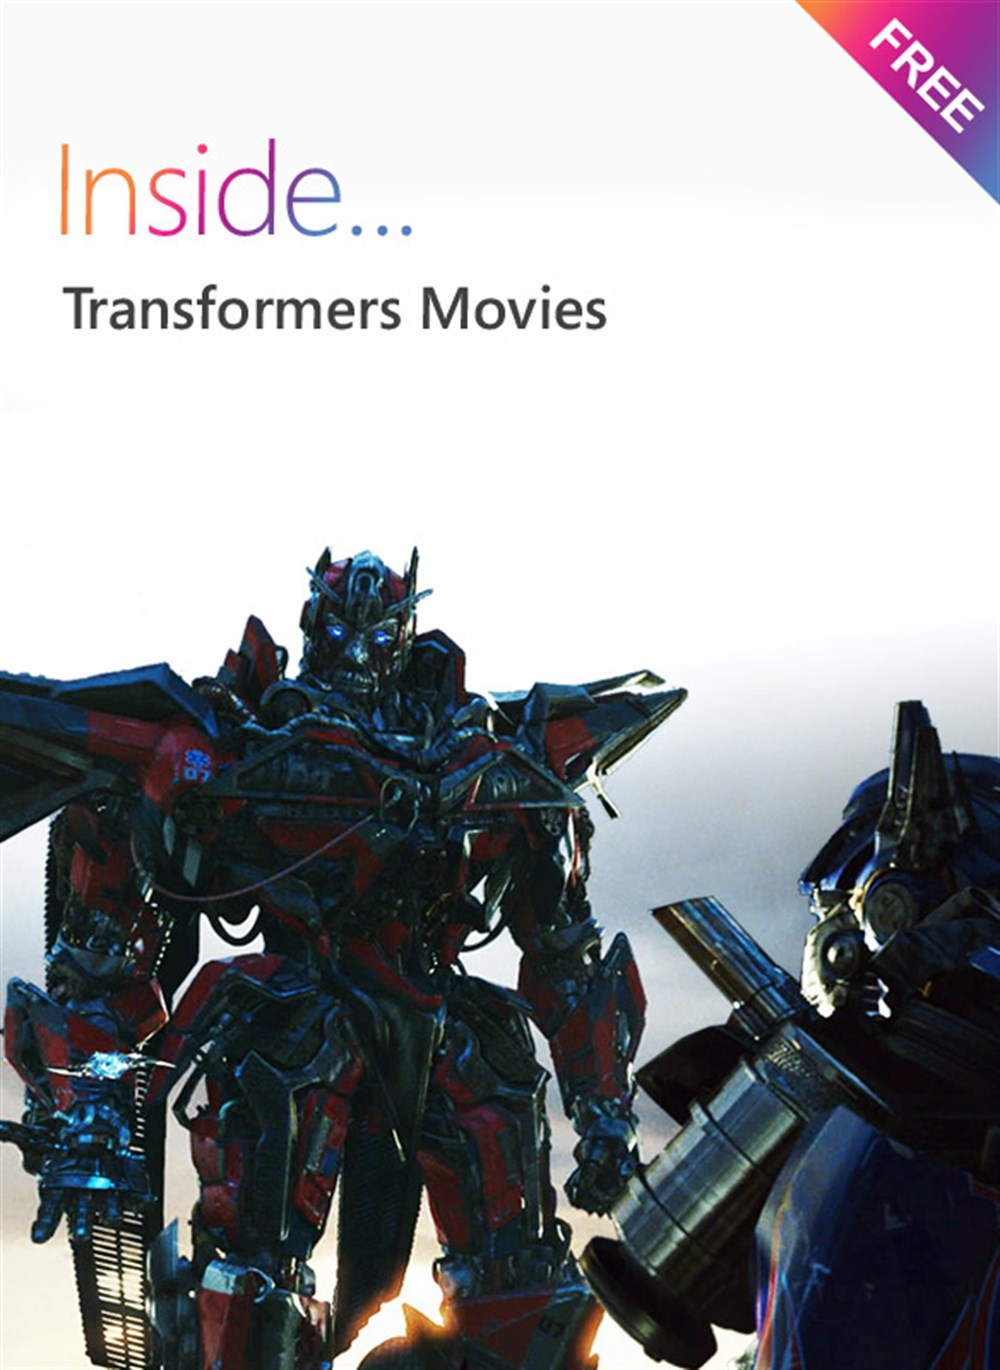 Inside transformers movies microsoft store for Inside unrated movie